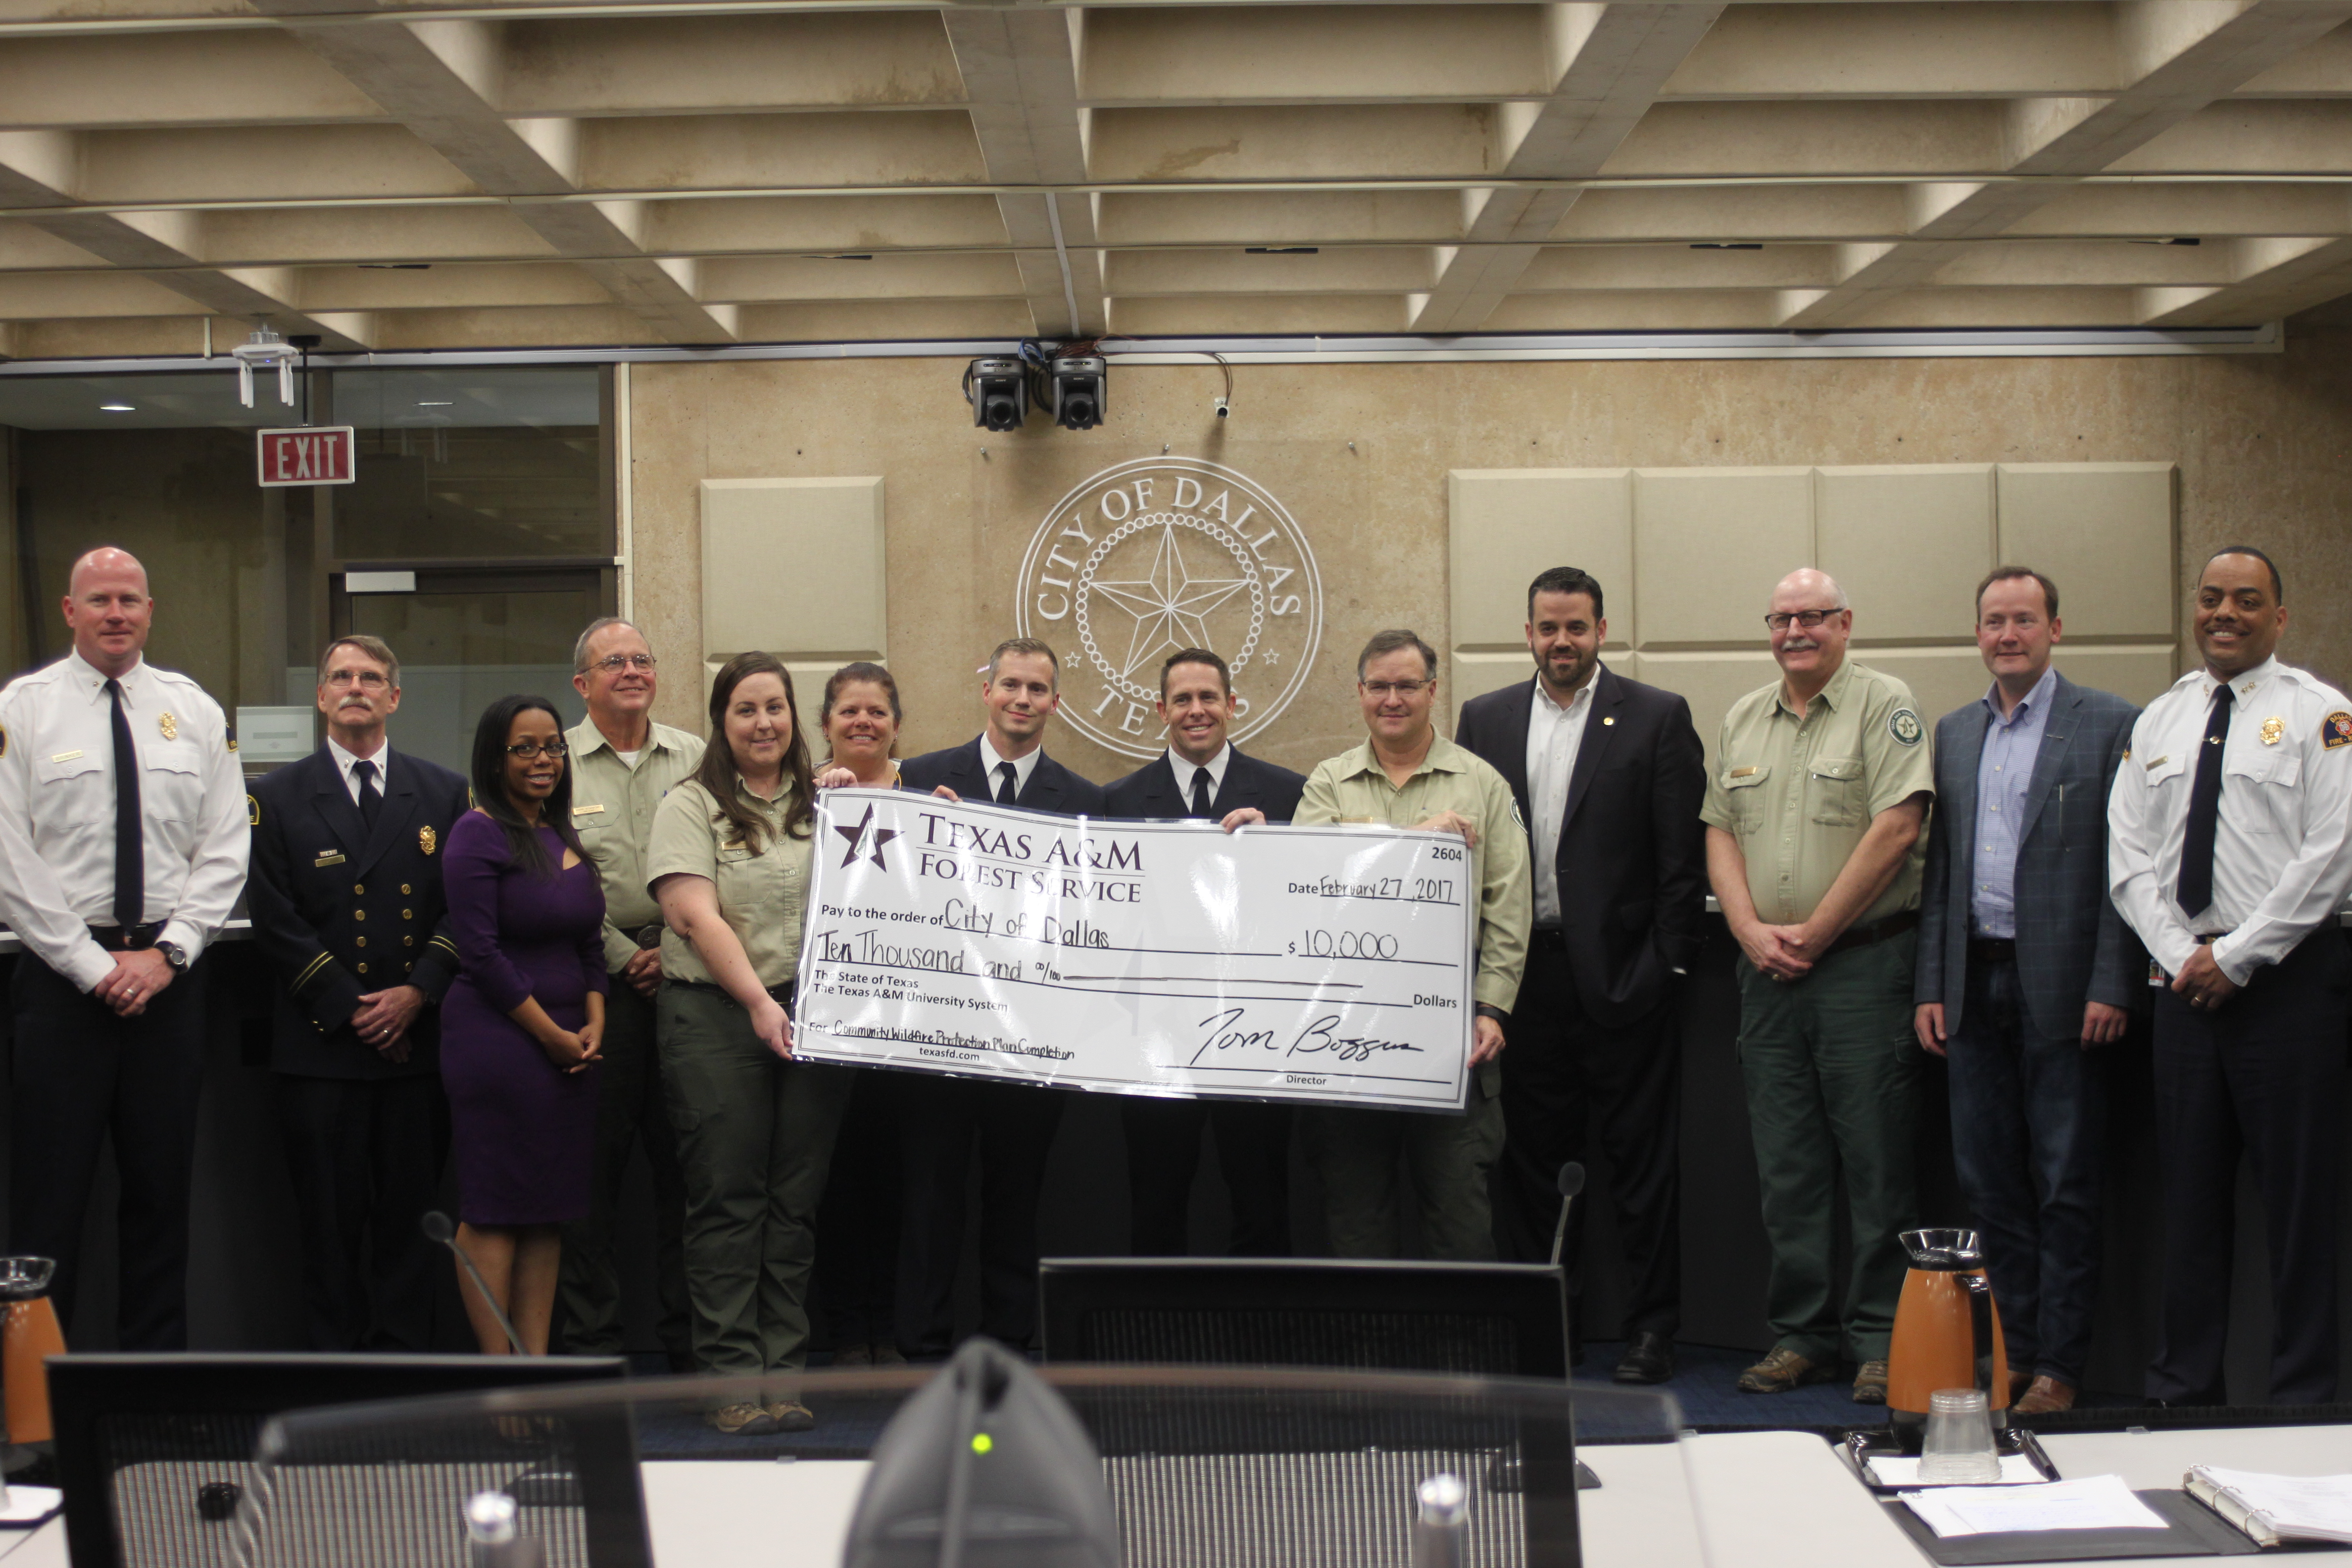 City of Dallas completes Community Wildfire Protection Plan